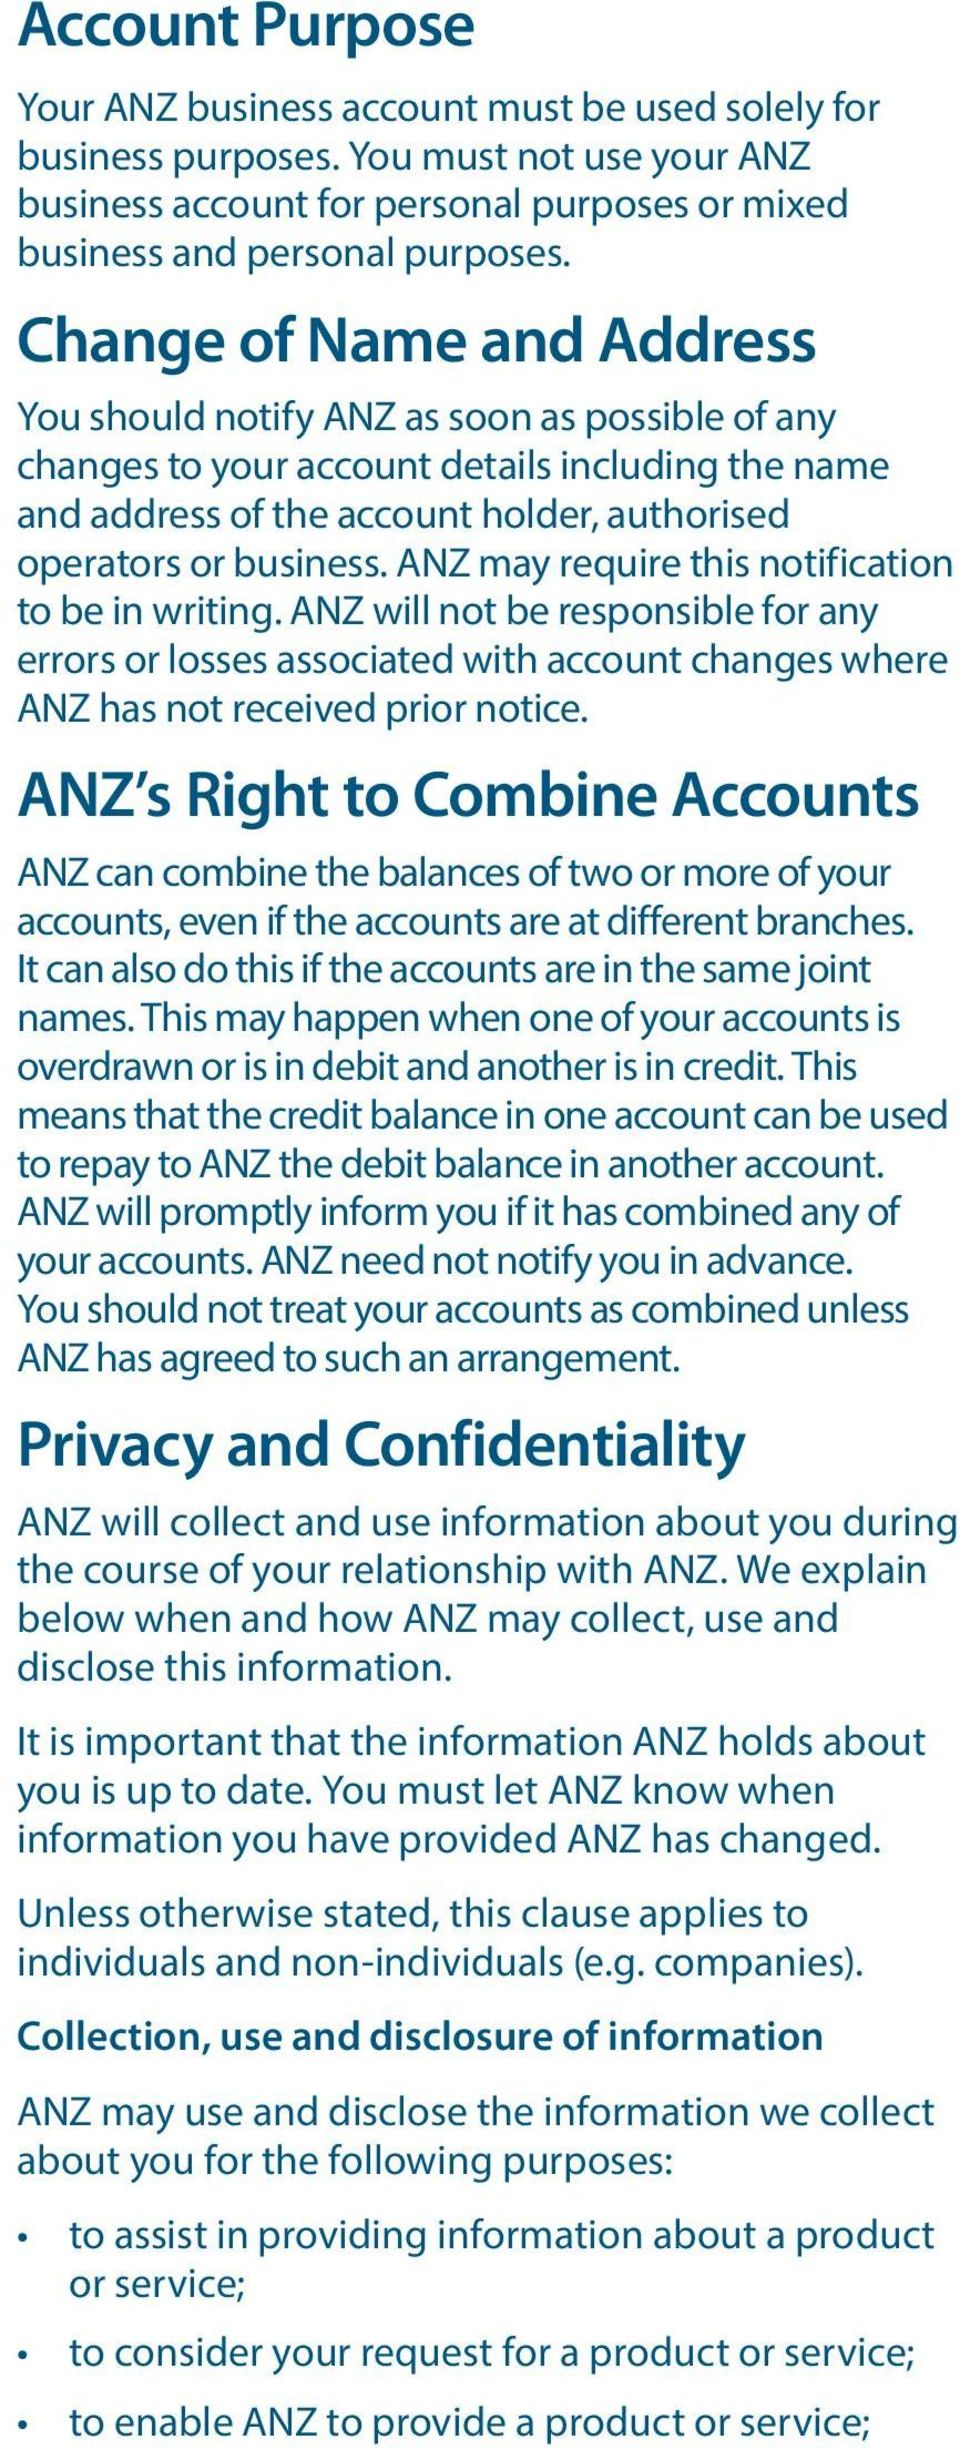 ANZ may require this notification to be in writing. ANZ will not be responsible for any errors or losses associated with account changes where ANZ has not received prior notice.